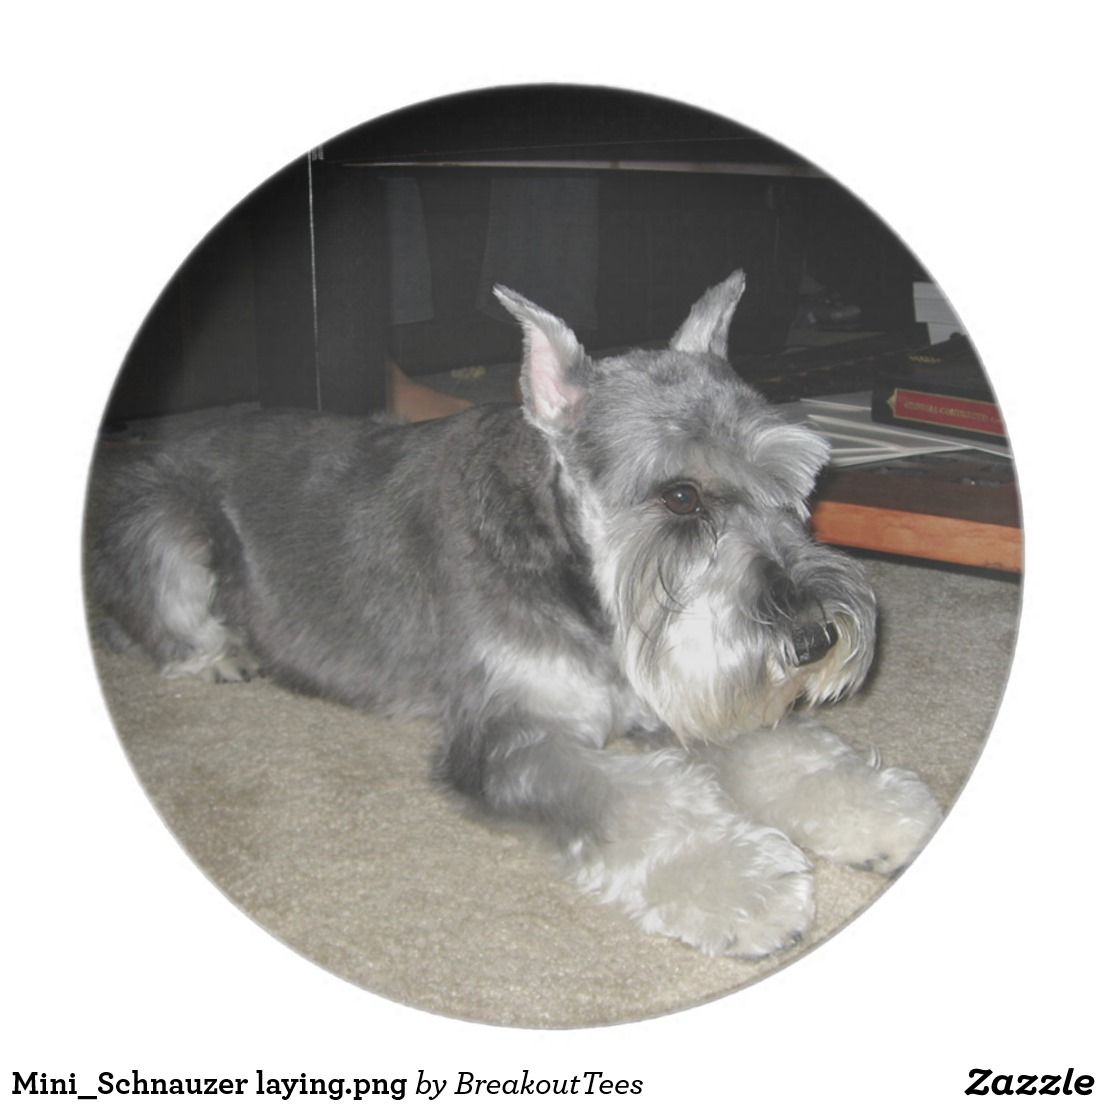 Mini_Schnauzer laying.png Plate